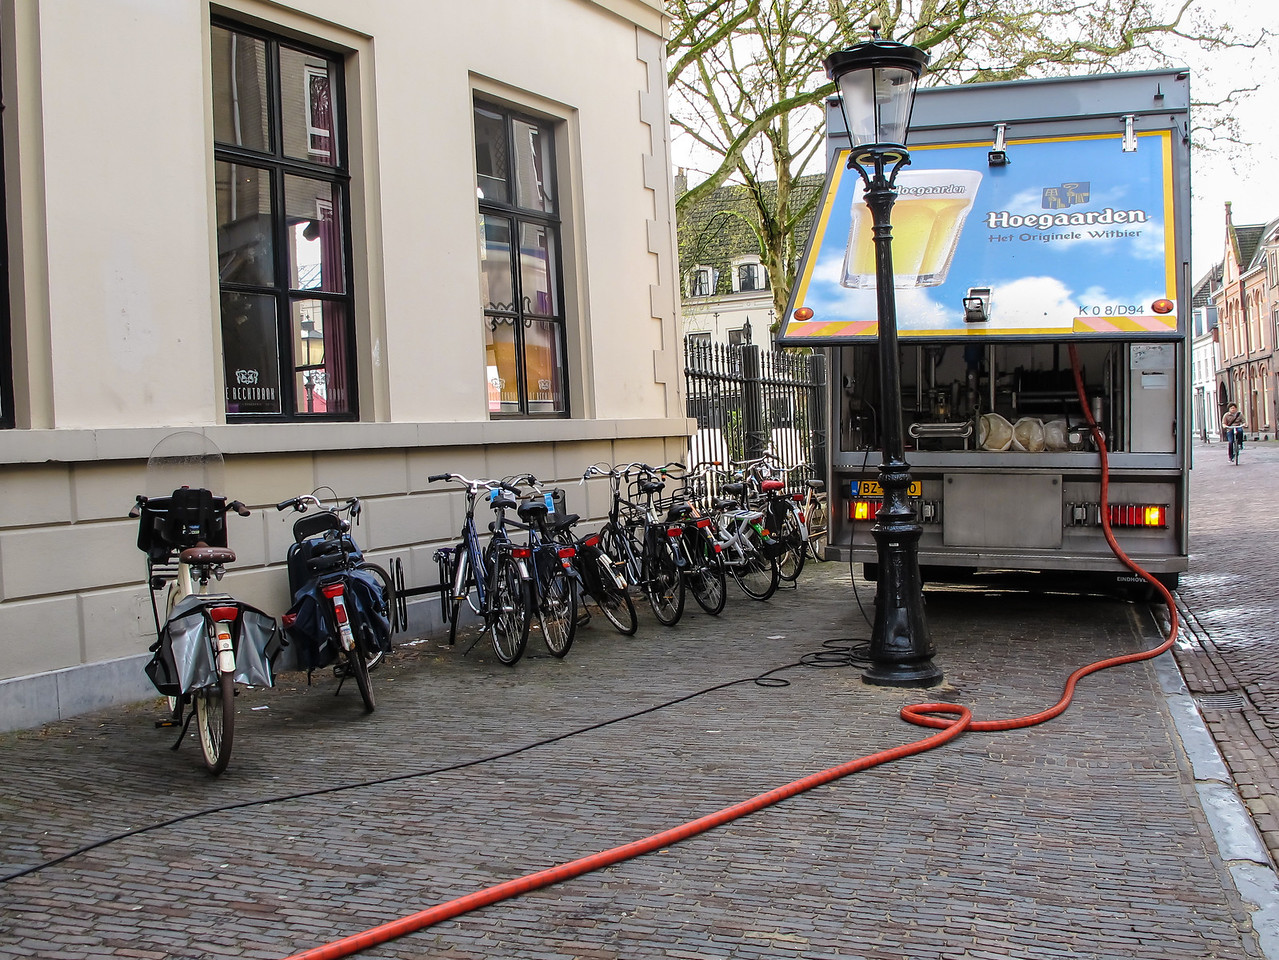 Look carefully at the picture on the back of the truck and you'll see what was running through the orange hose.  Yes, it was beer being brought into the bar in the Court Hotel in Utrecht where we stayed!